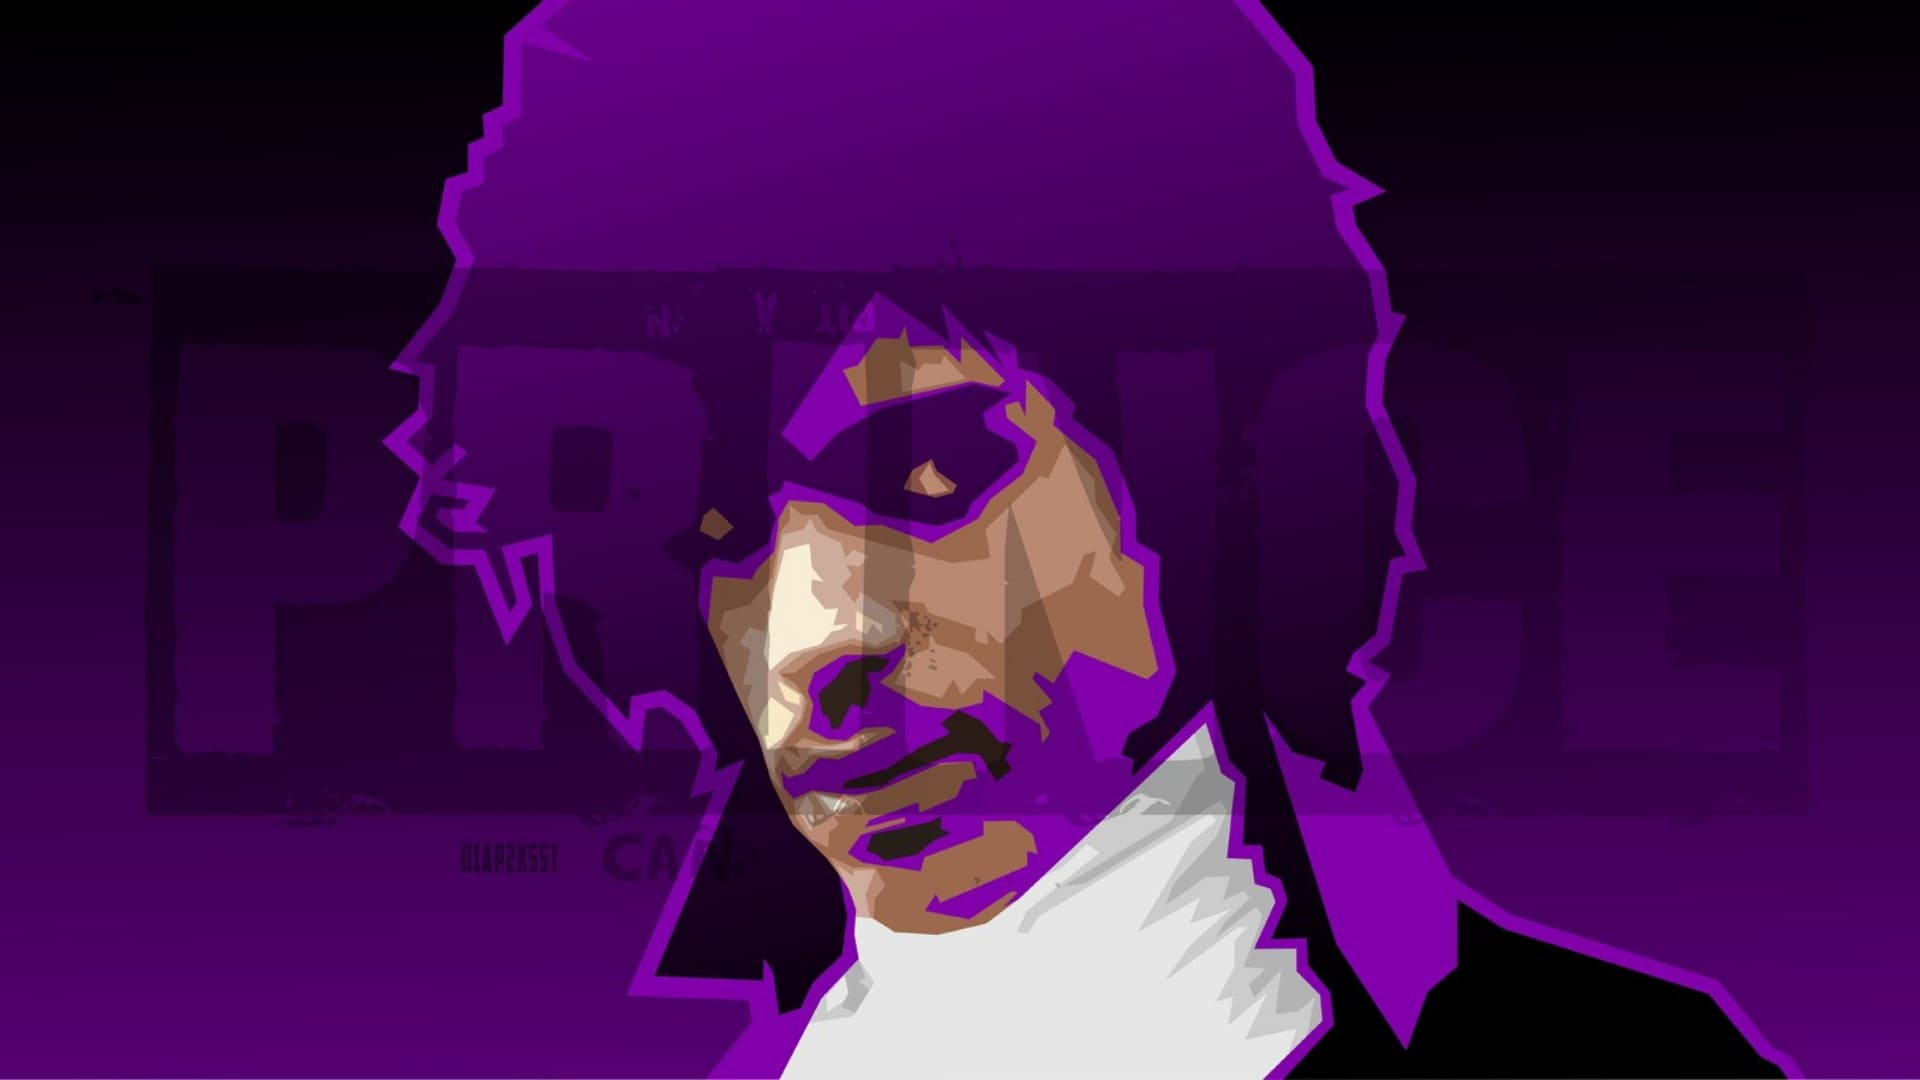 Wallpapers of prince